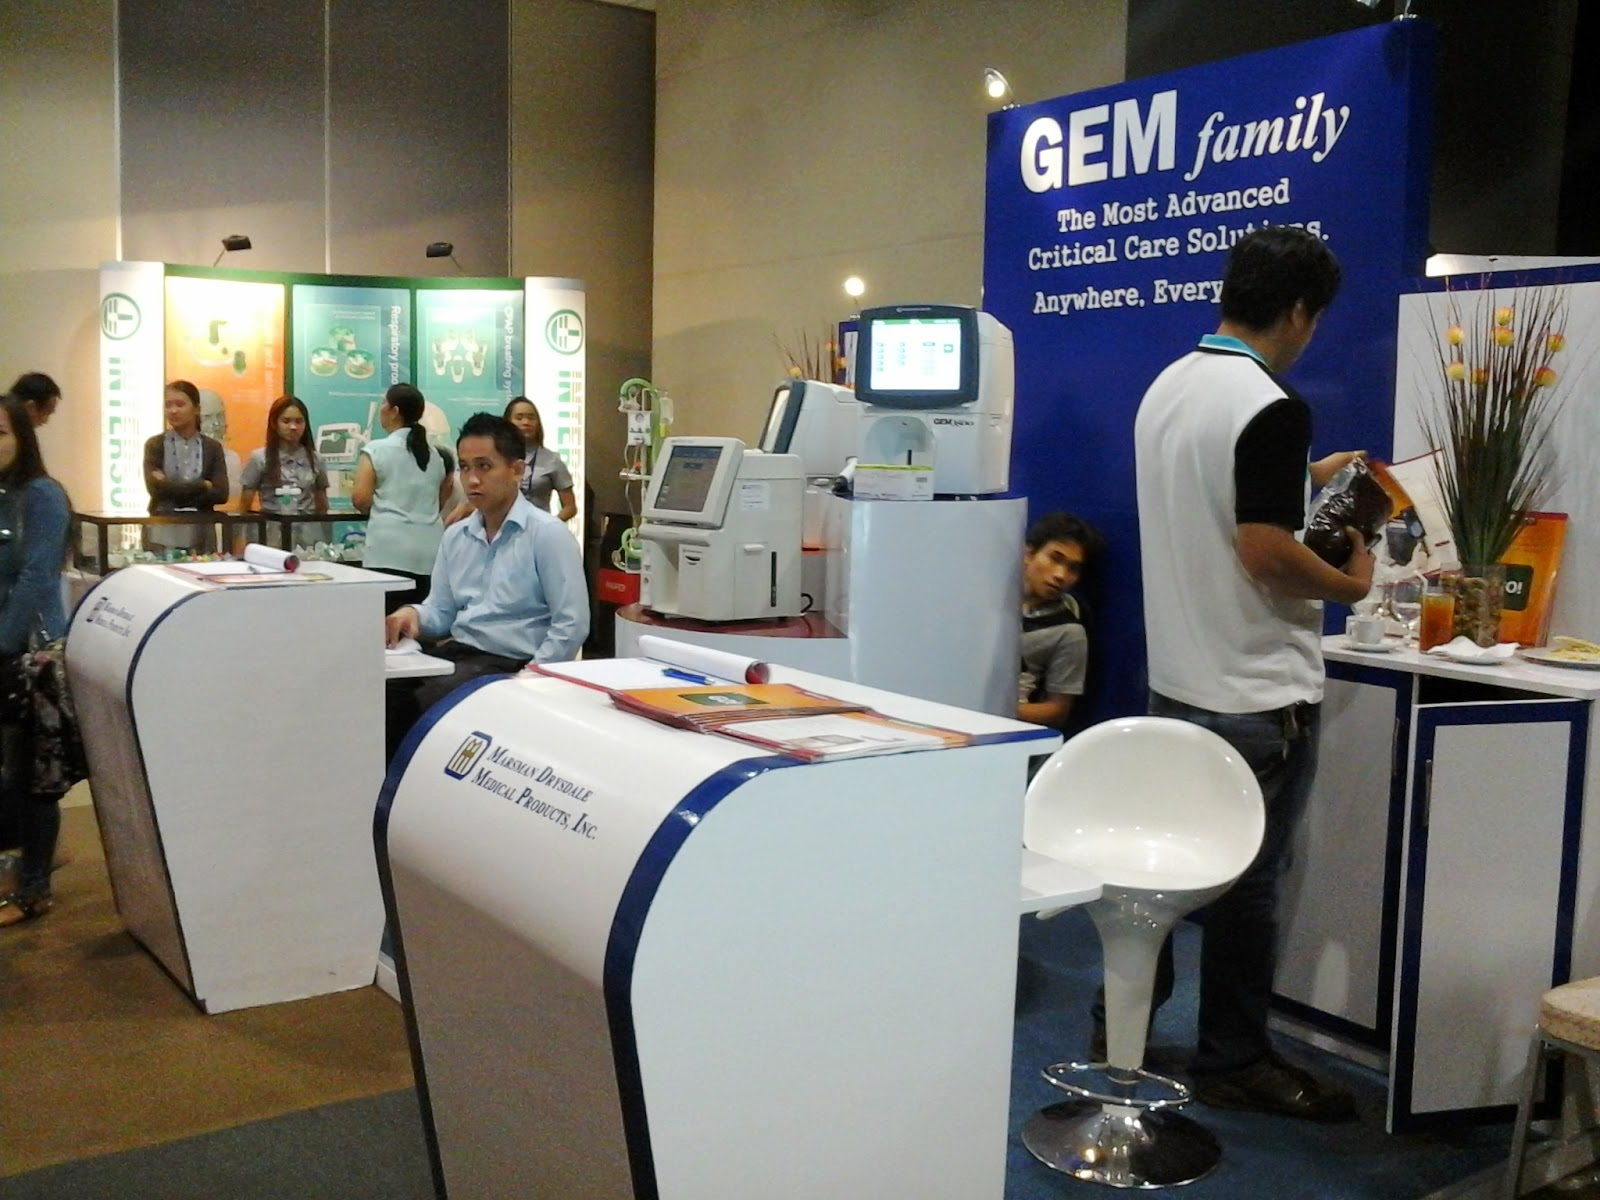 GEM Family Critical Care Exhibit Stand